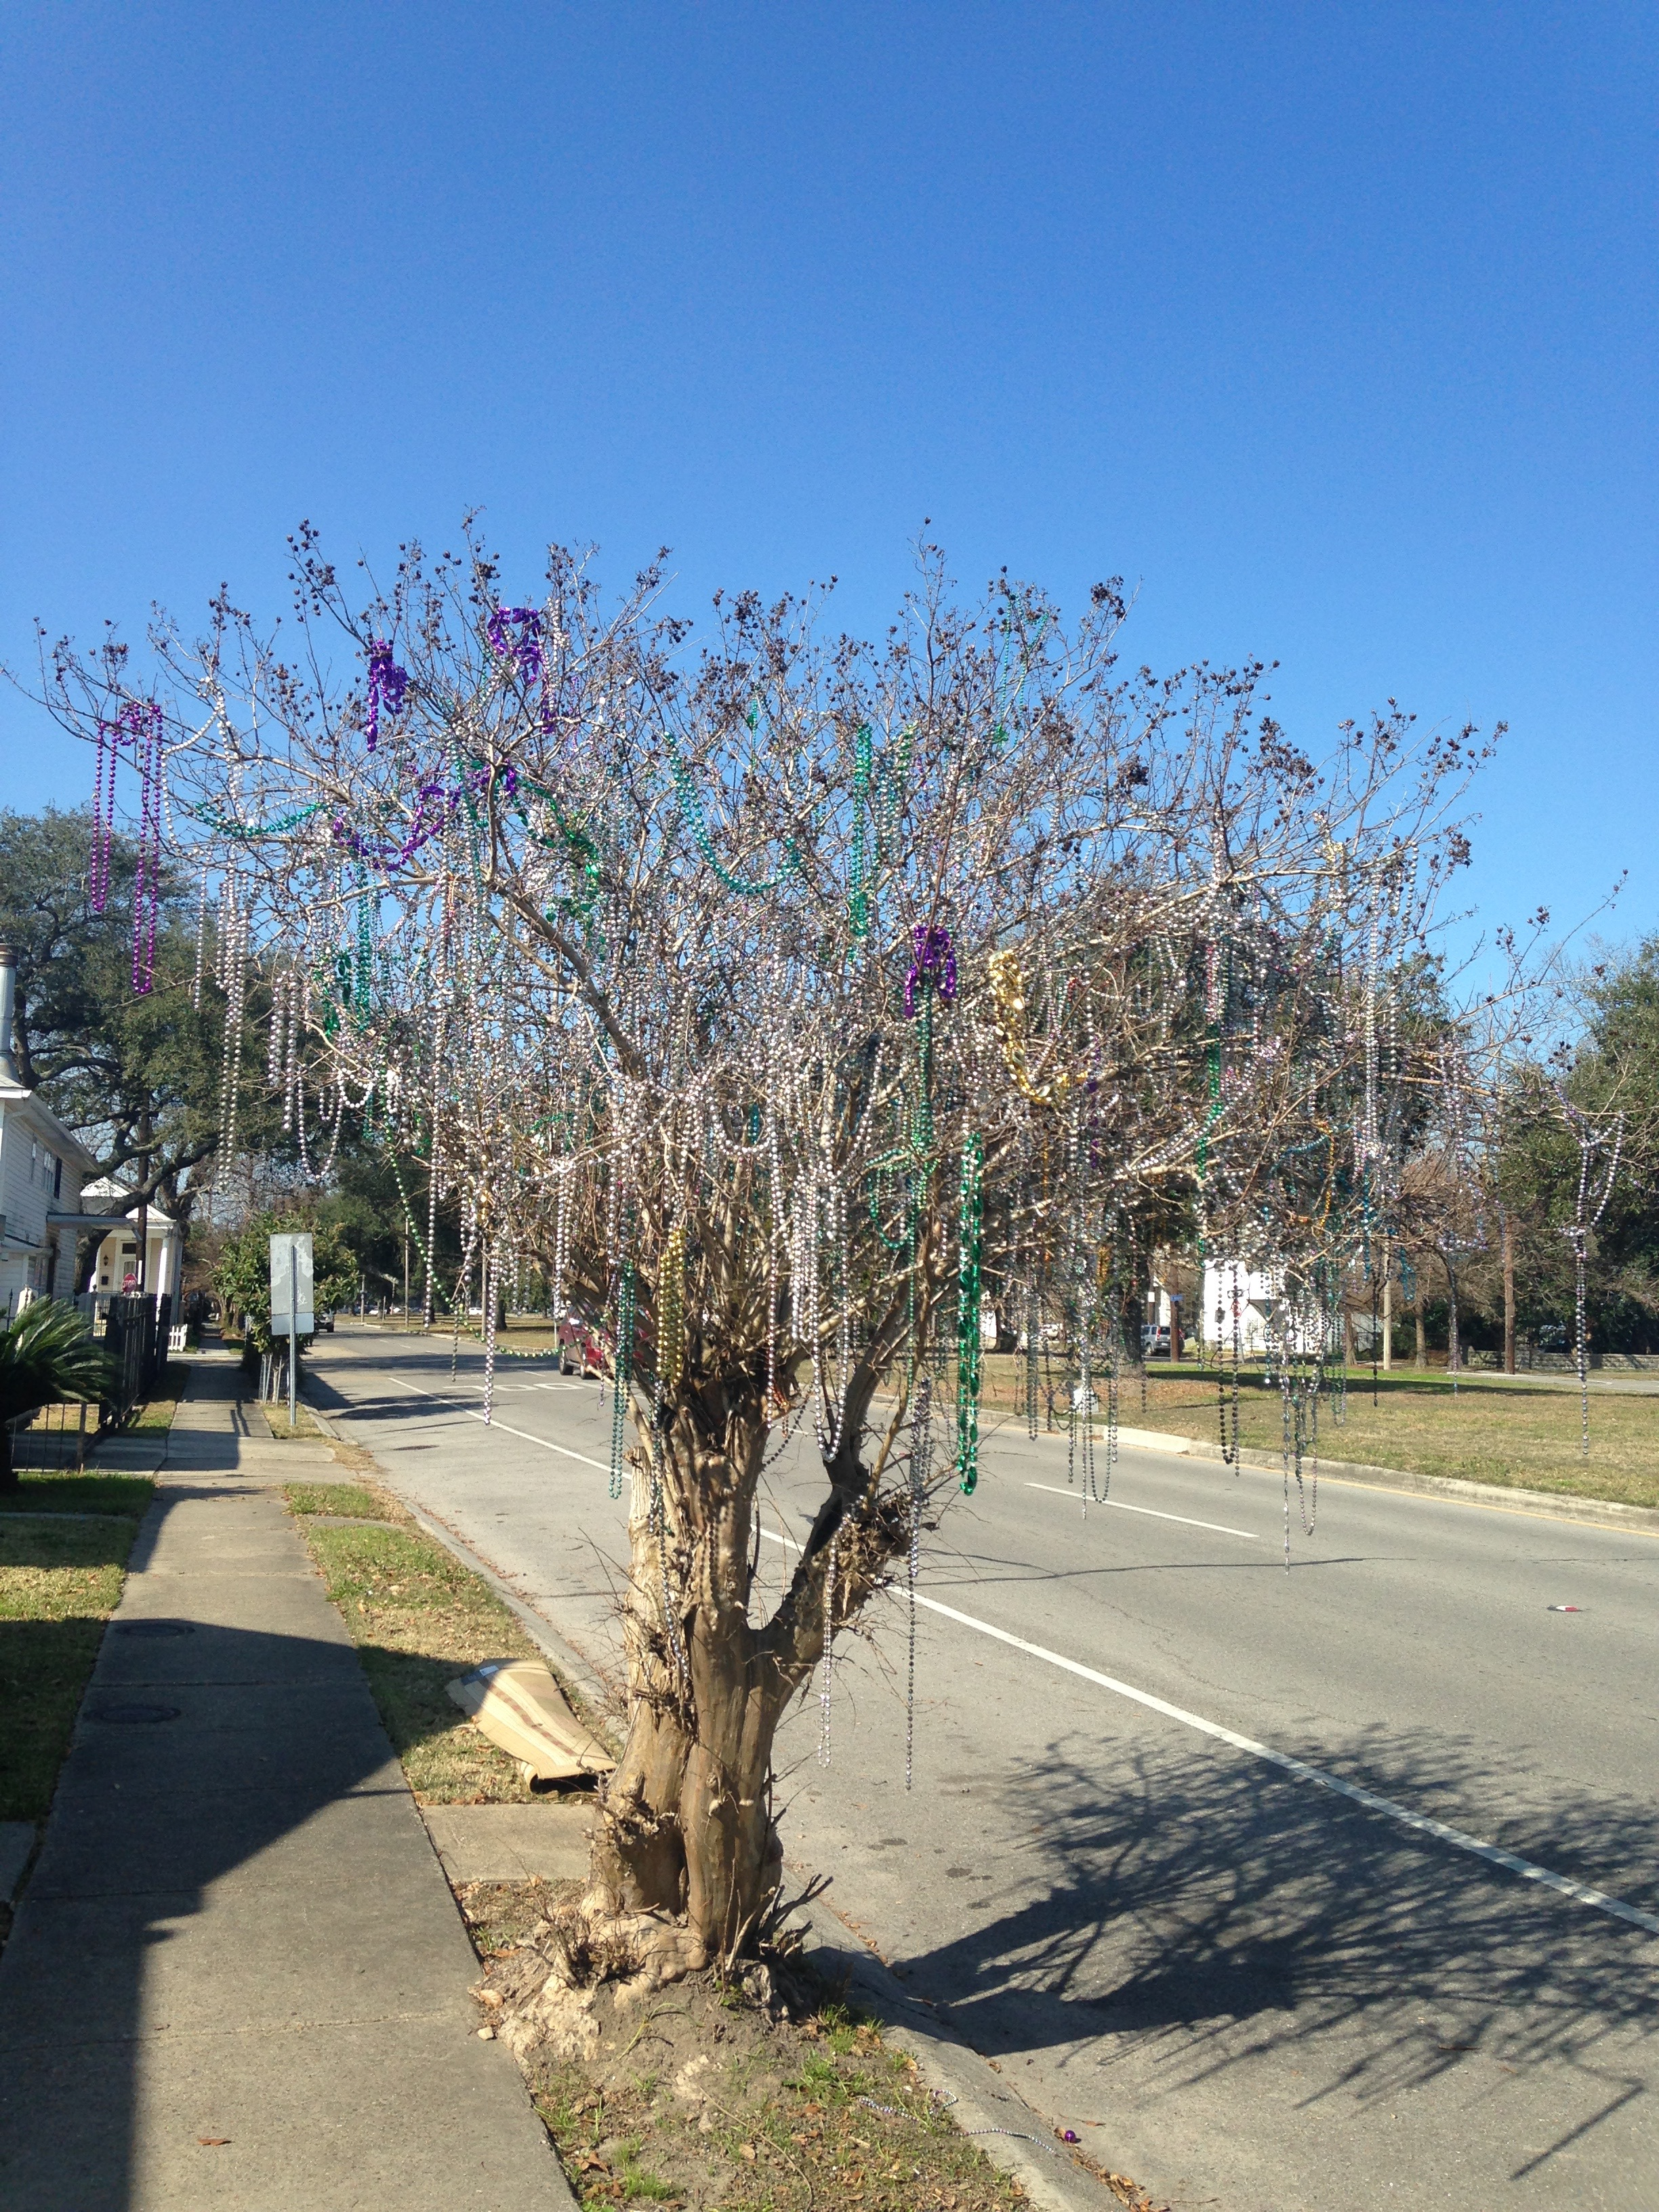 Ready for it's next round of beads!! Show us what you got, tree!